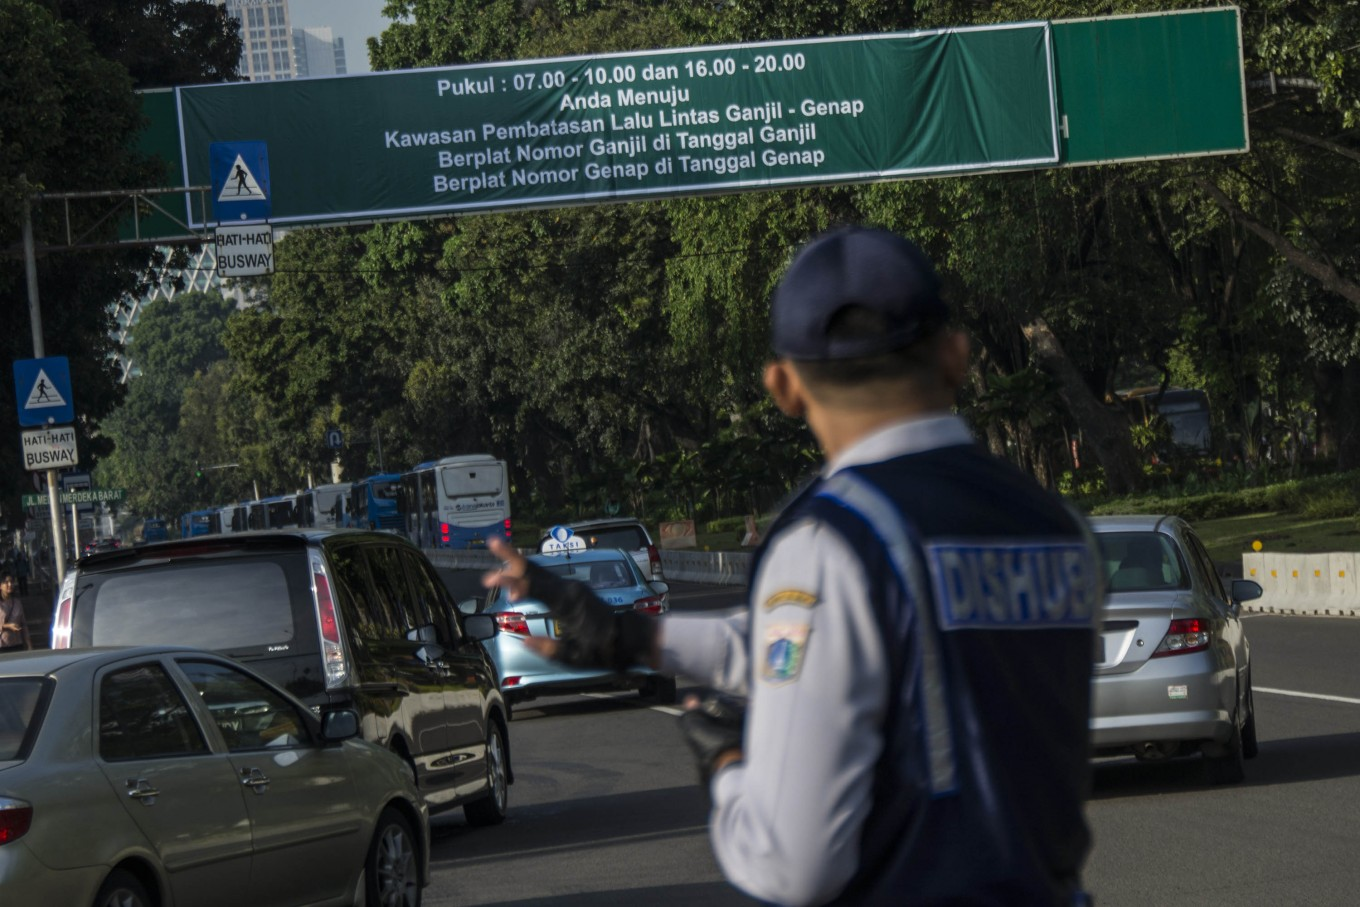 Fewer traffic accidents in Jakarta, thanks to odd-even policy: Police